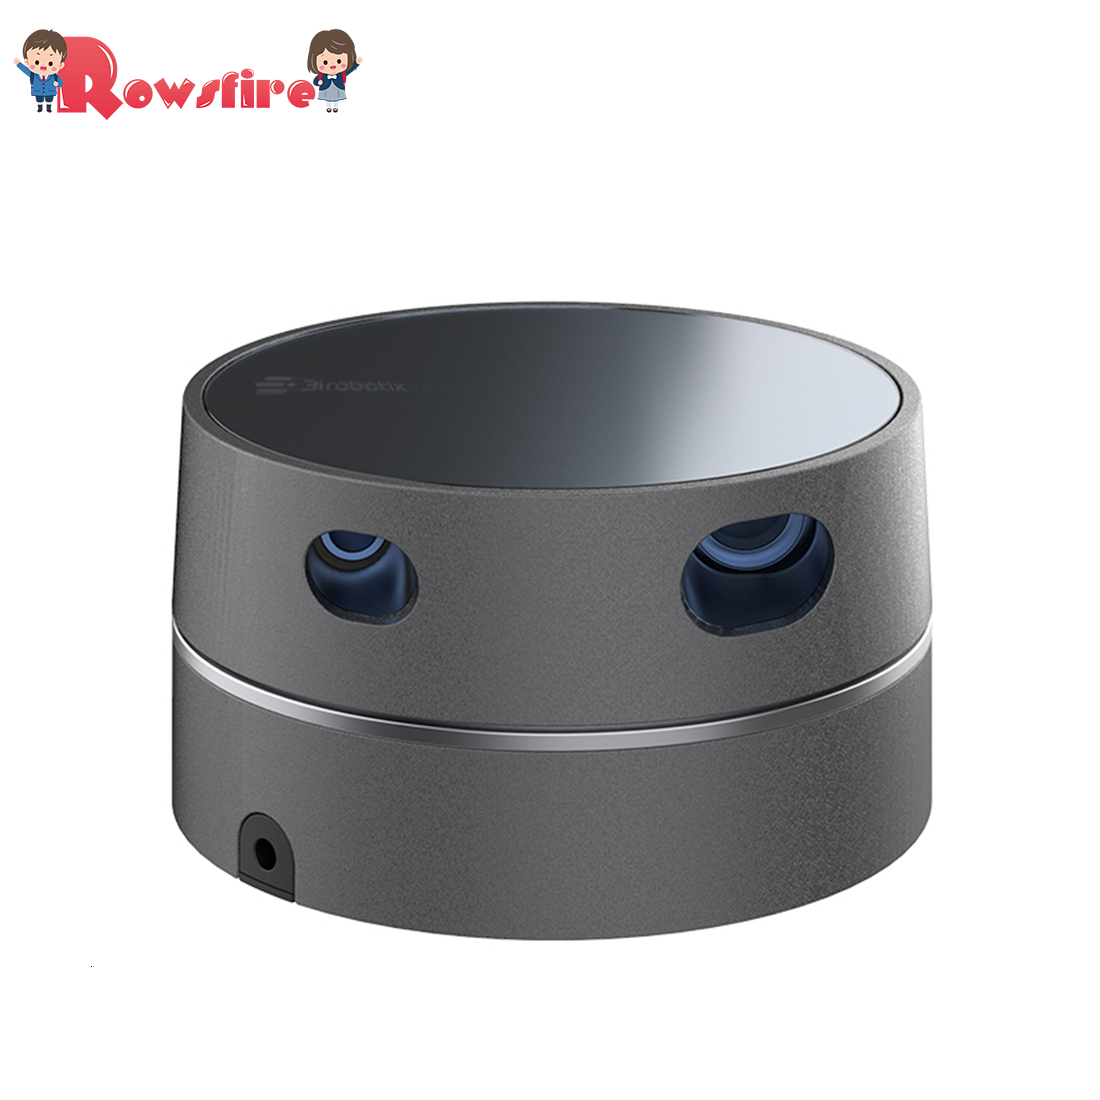 Business Level Outdoor Radar Scanner GPS Path Planning Obstacle Avoidance Large Screen Interactive Distance Measuring Sensor